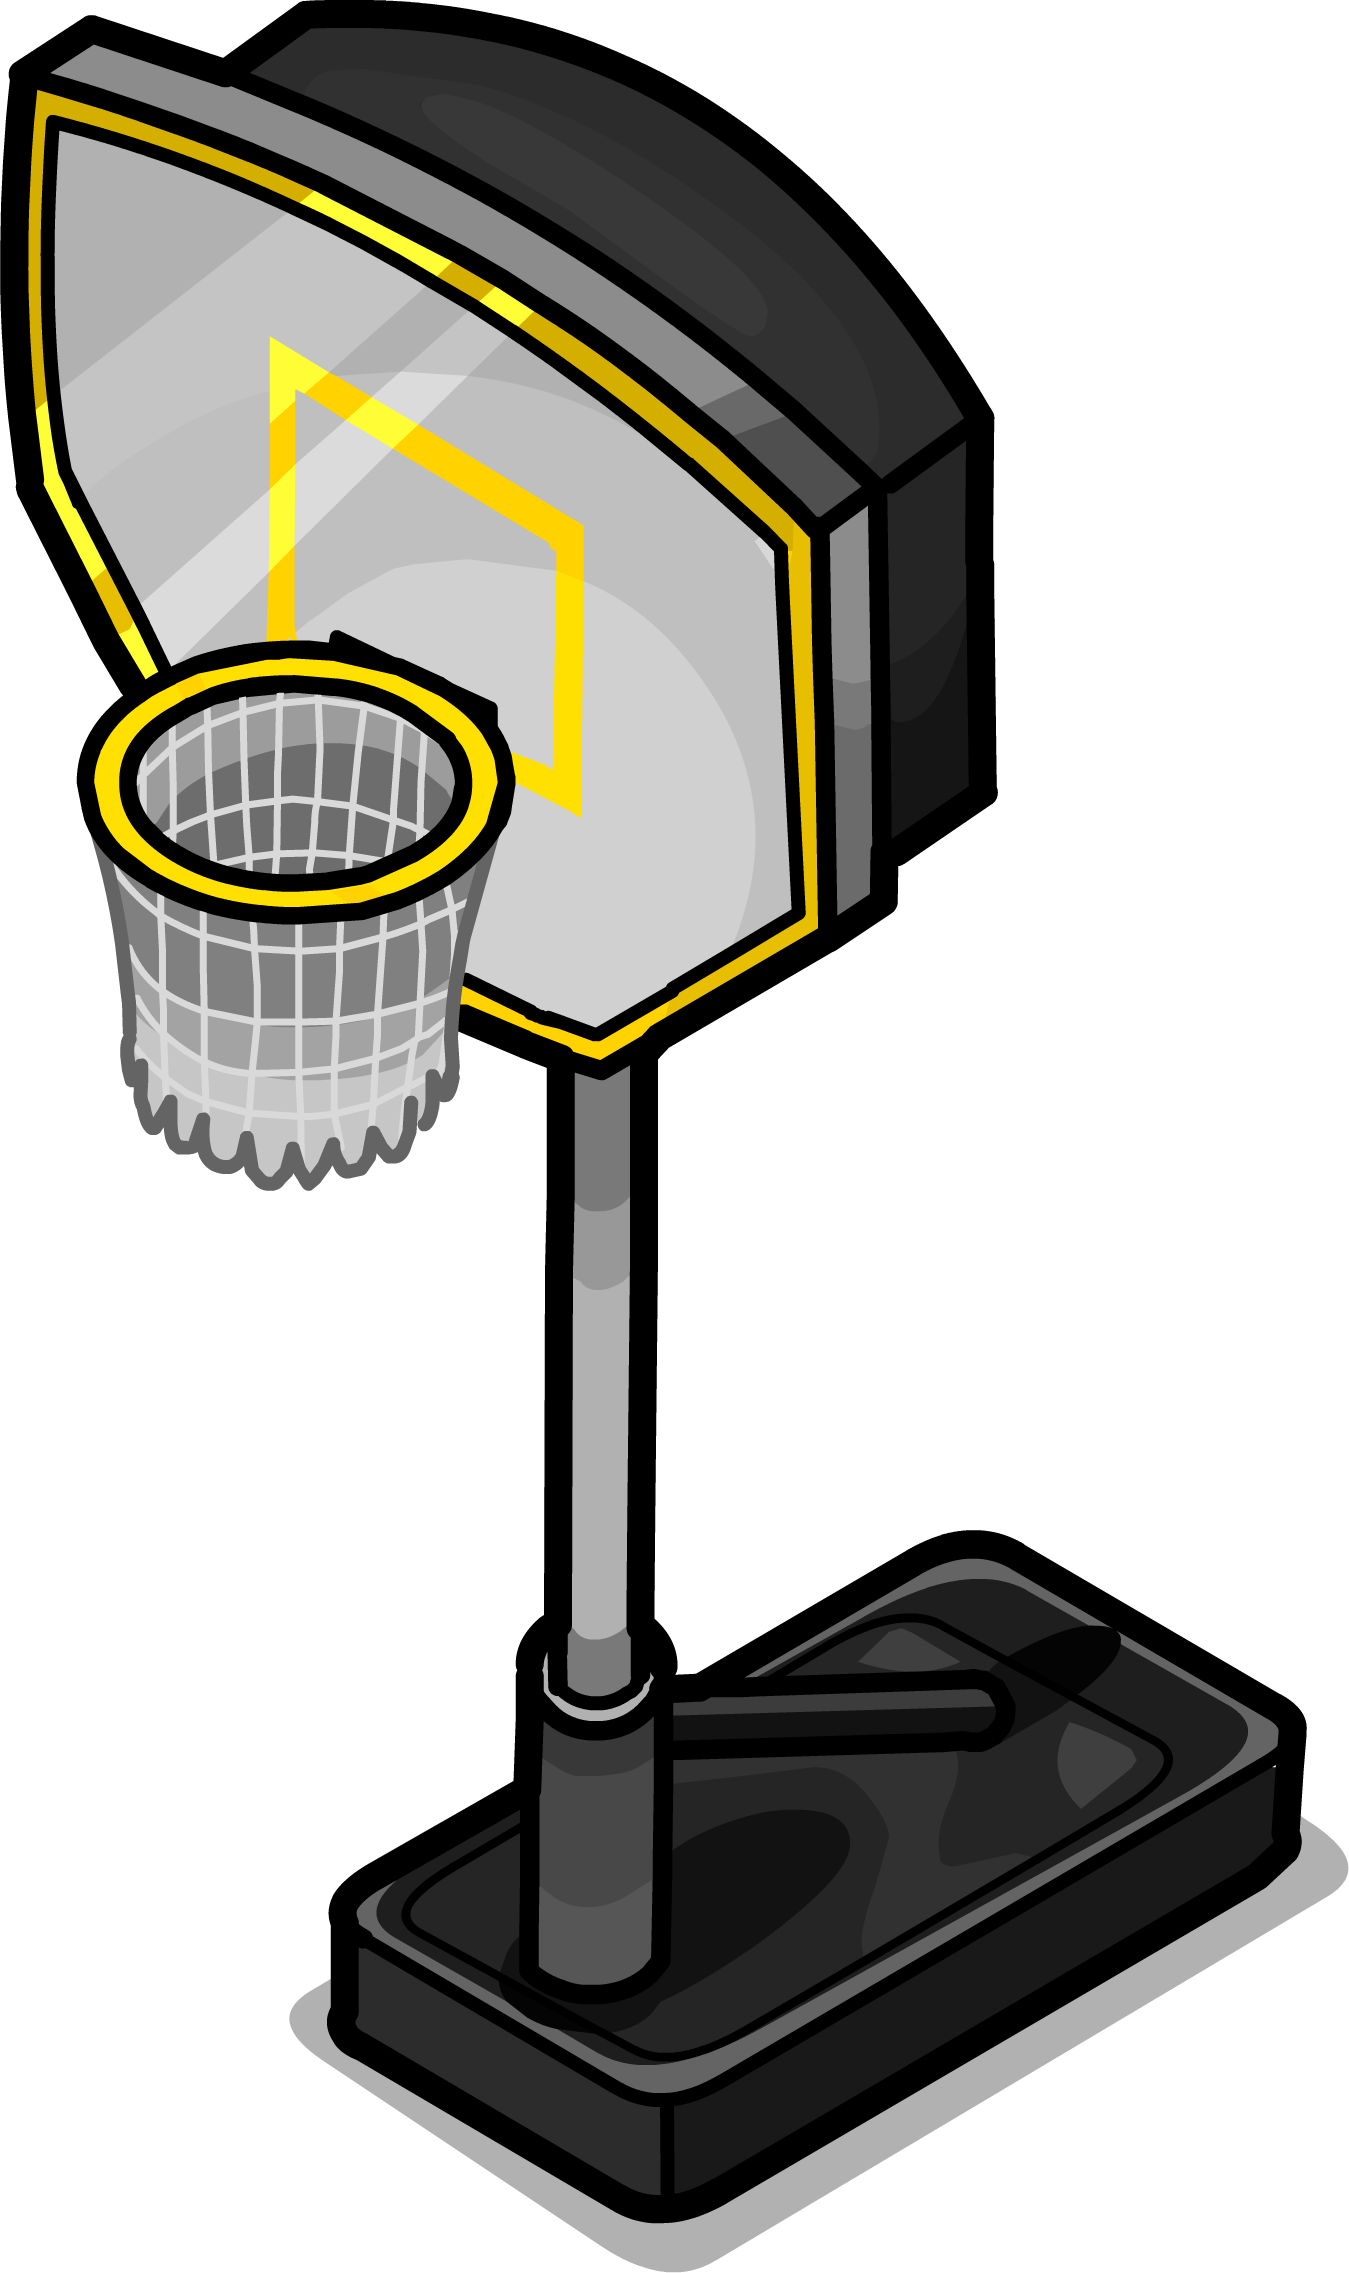 Basketball hoop clipart yellow clipart library stock Image - Basketball Hoop sprite 002.png | Club Penguin Wiki | FANDOM ... clipart library stock